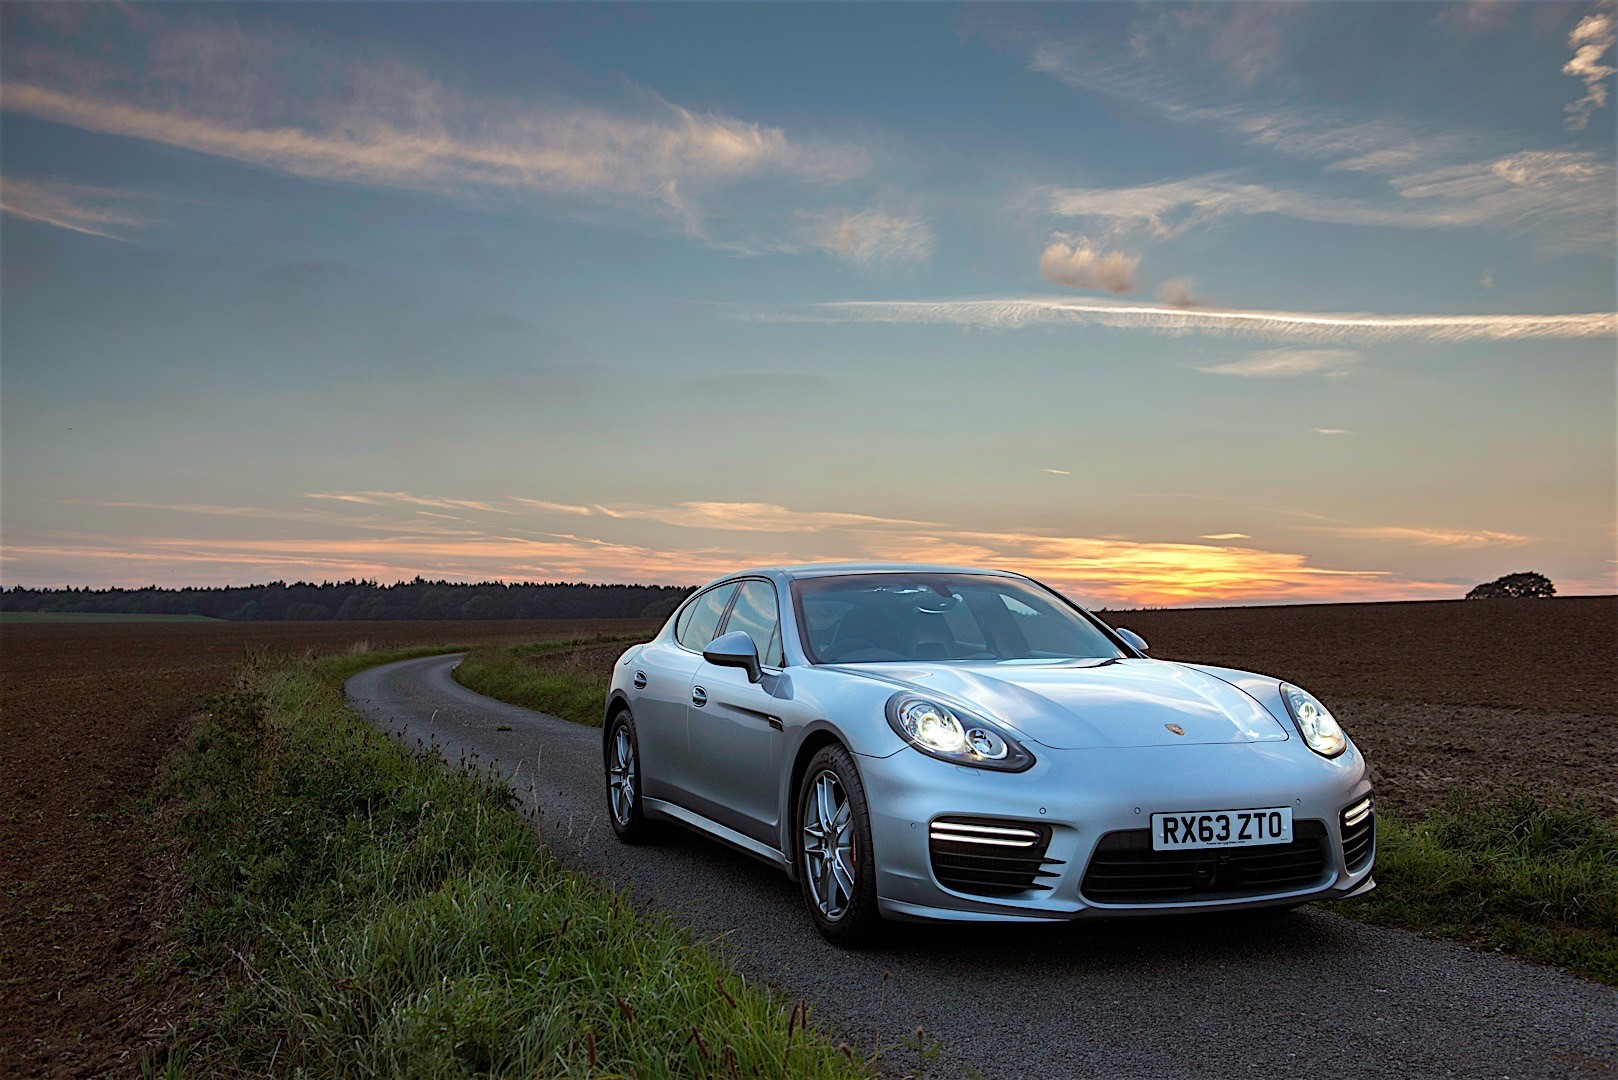 Porsche Panamera Turbo 2013 photo - 6